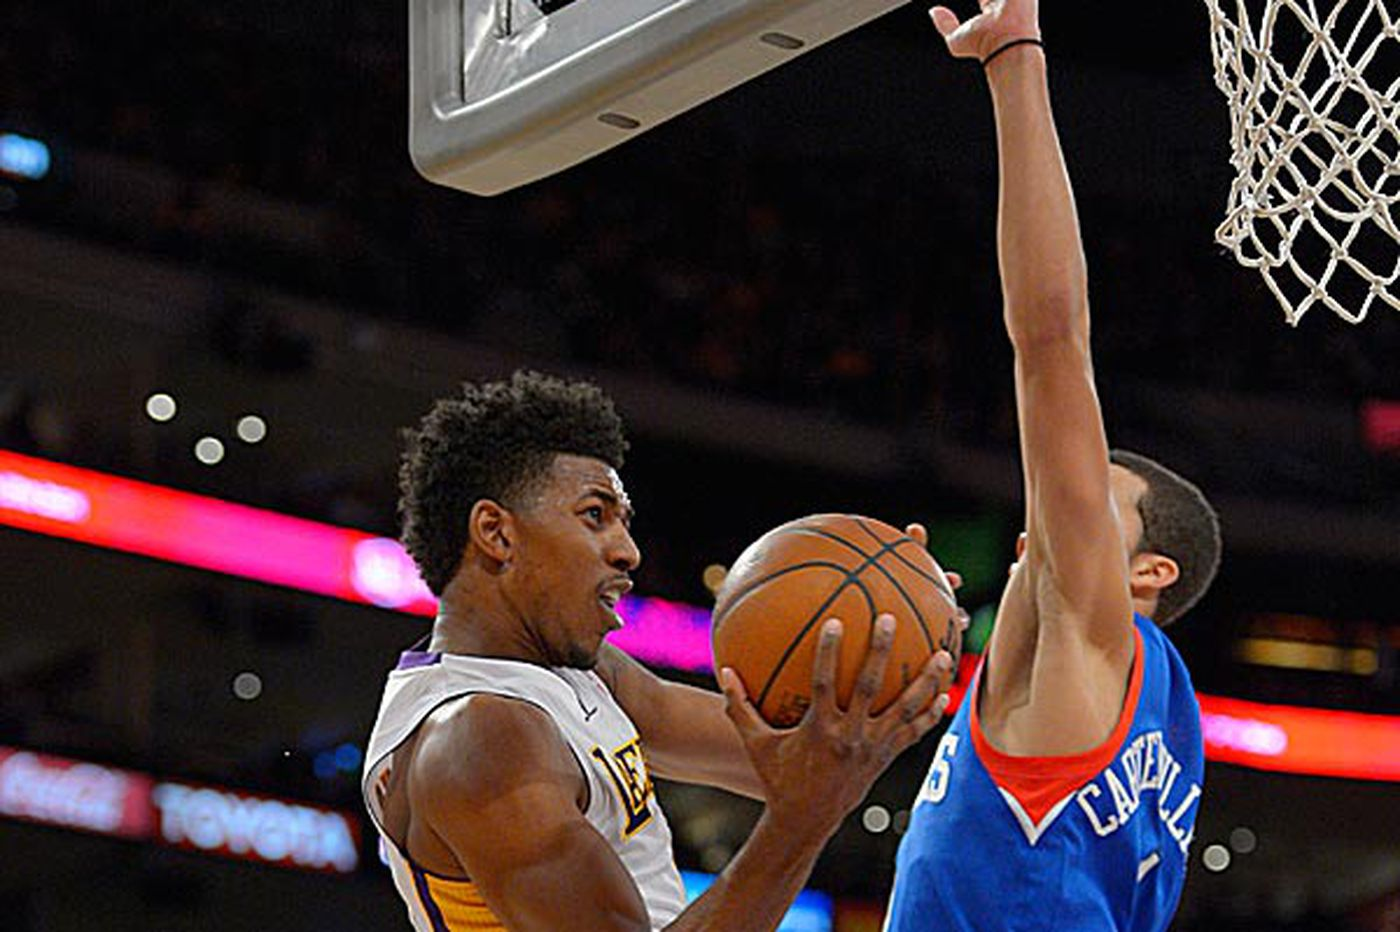 Sixers executed well defensively in win over Lakers